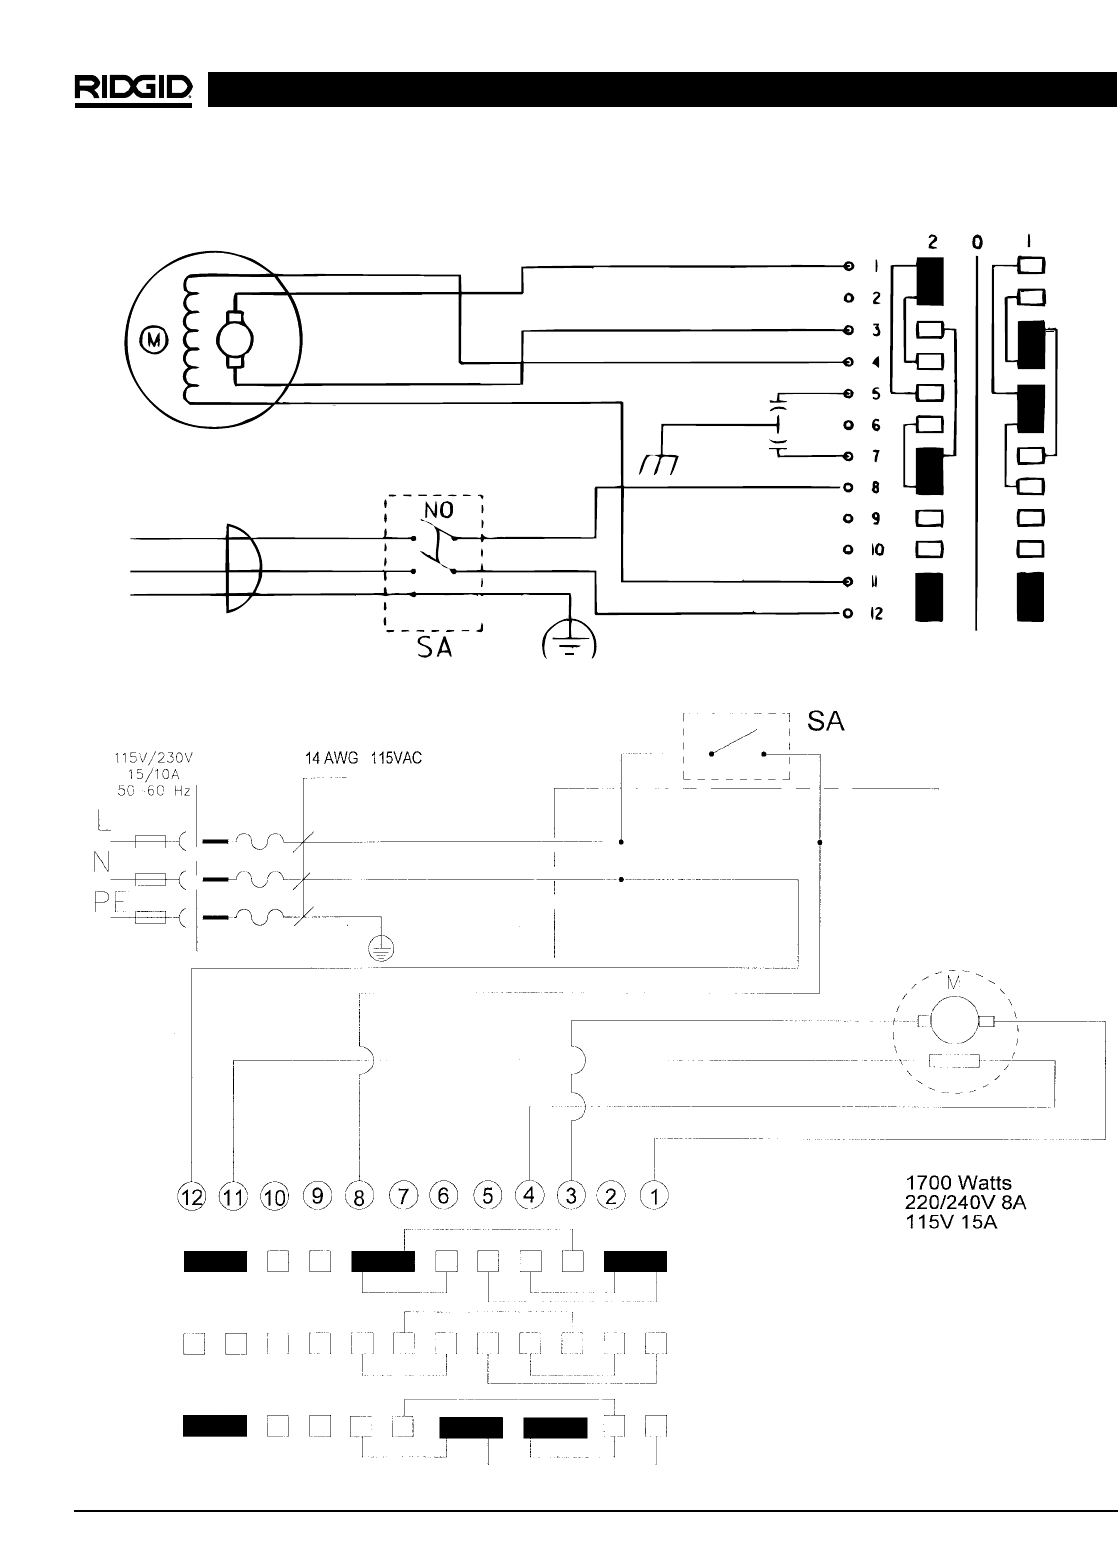 ridgid pipe threader switch wiring diagram auto electrical wiring rh 6weeks co uk